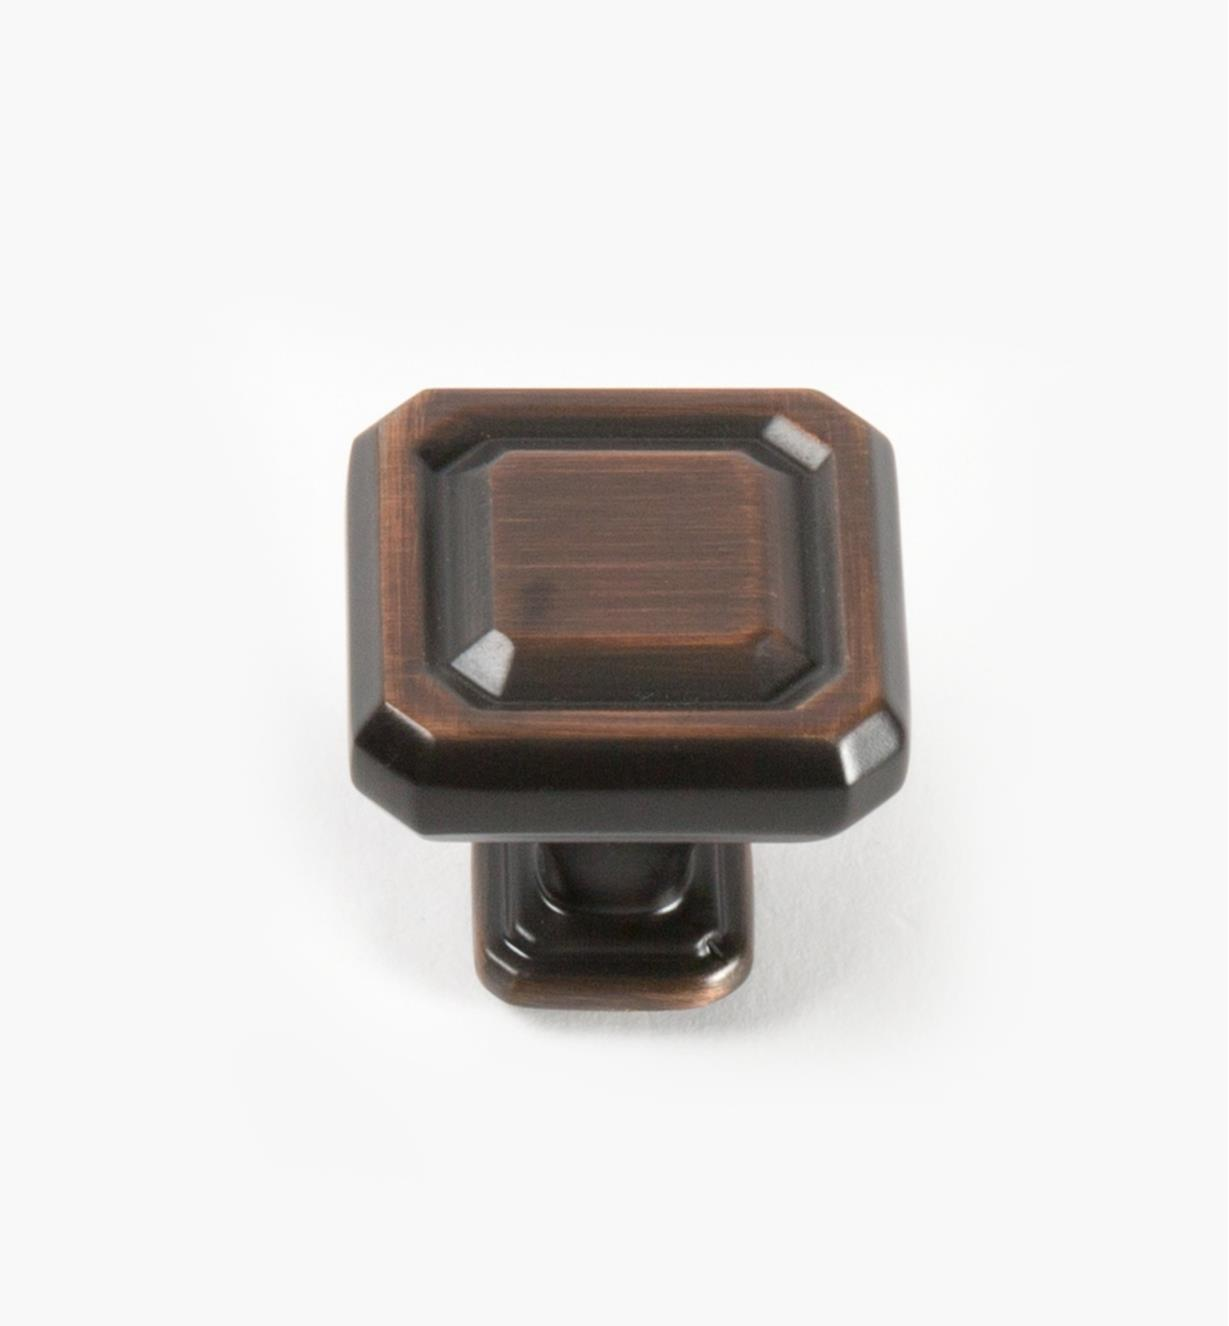 02A1605 - Wells Oil-Rubbed Bronze 32mm x 32mm Knob, each